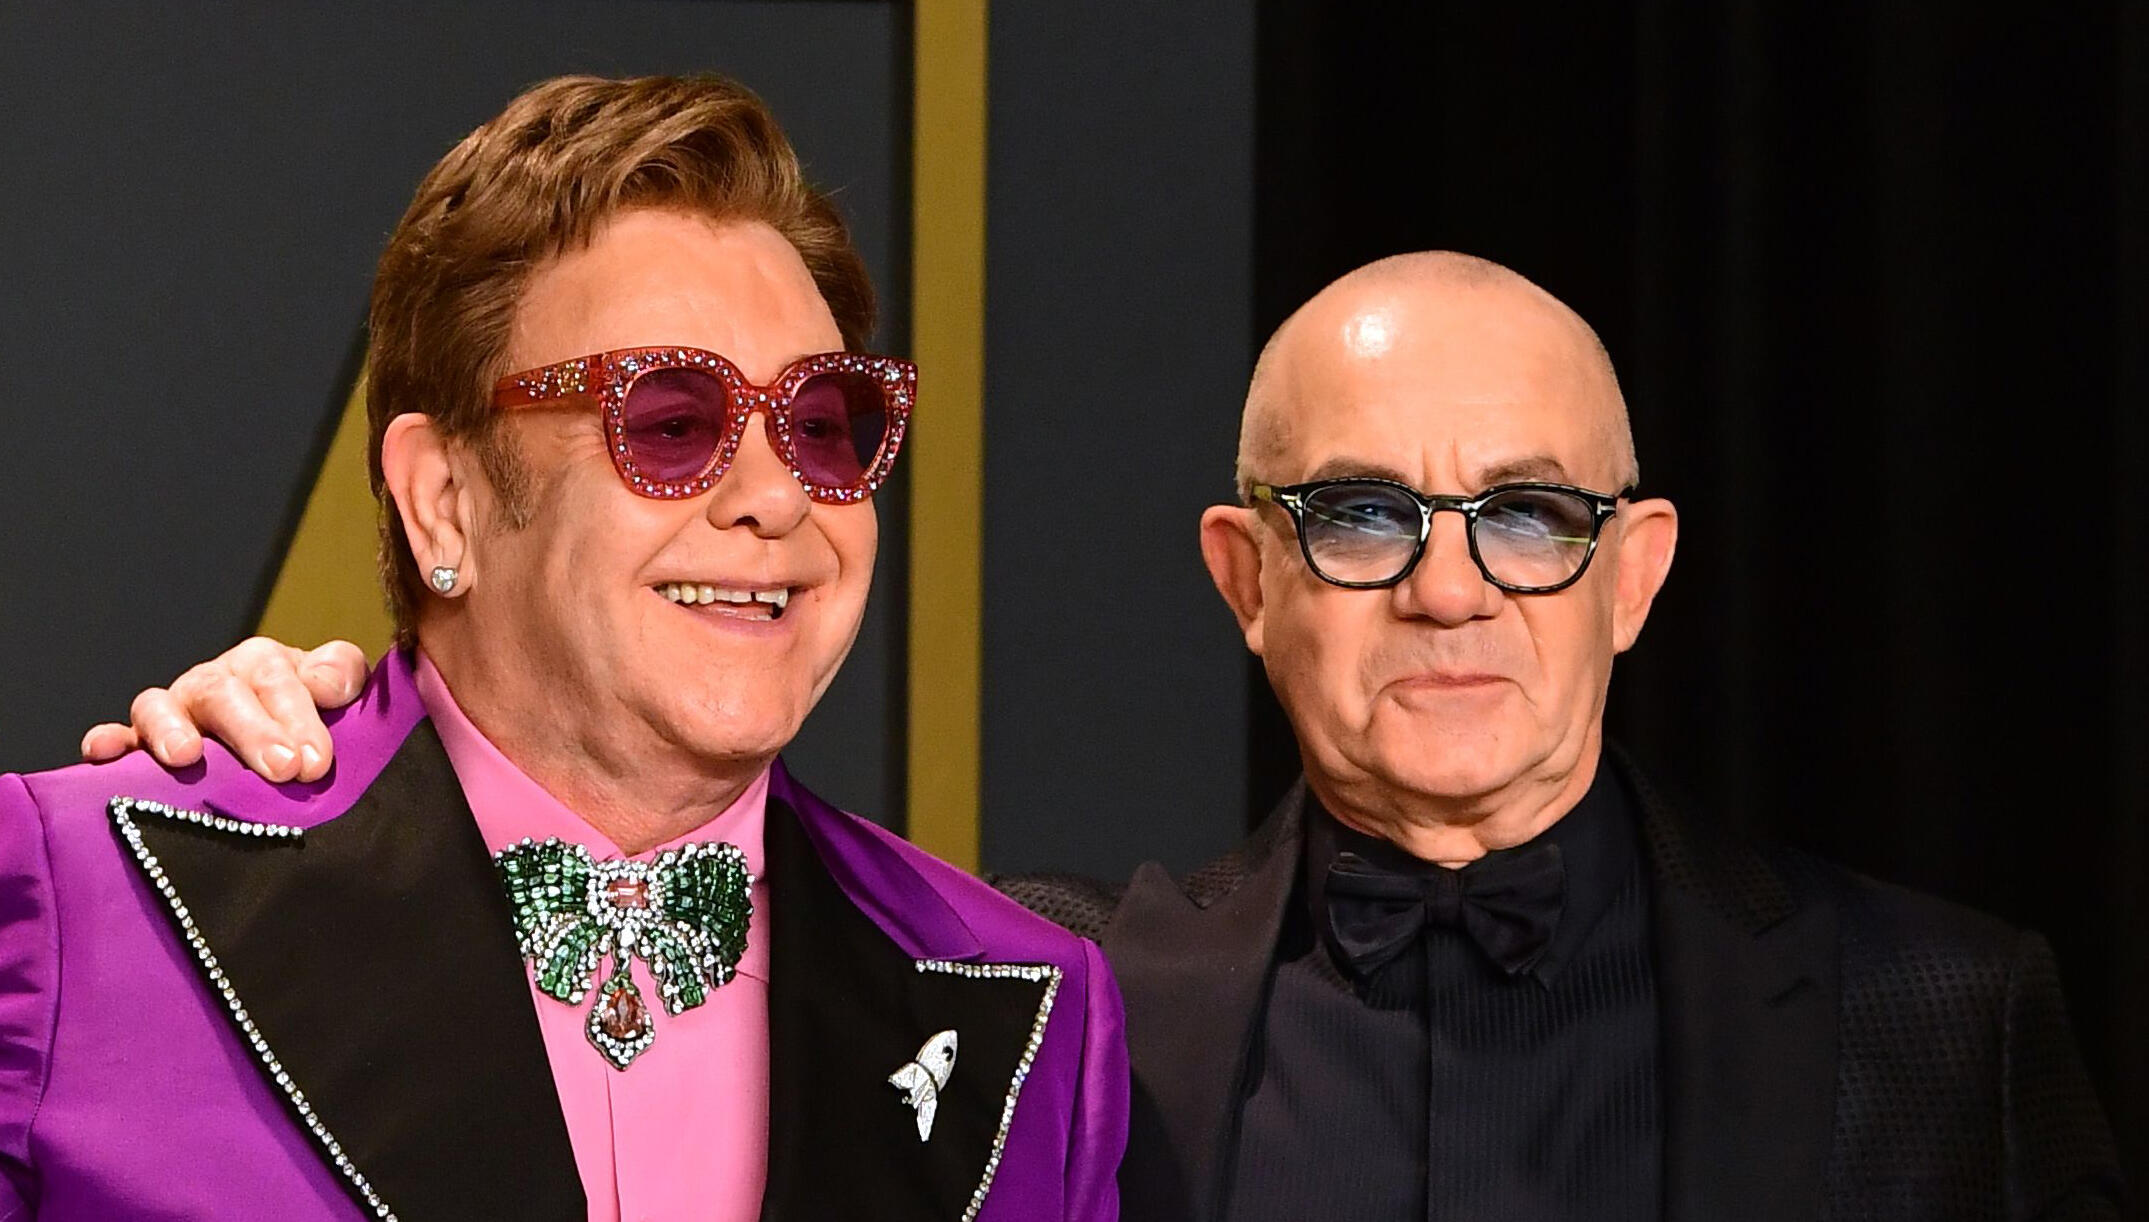 Elton John Shares Demo Recording Of First Song He Wrote With Bernie Taupin